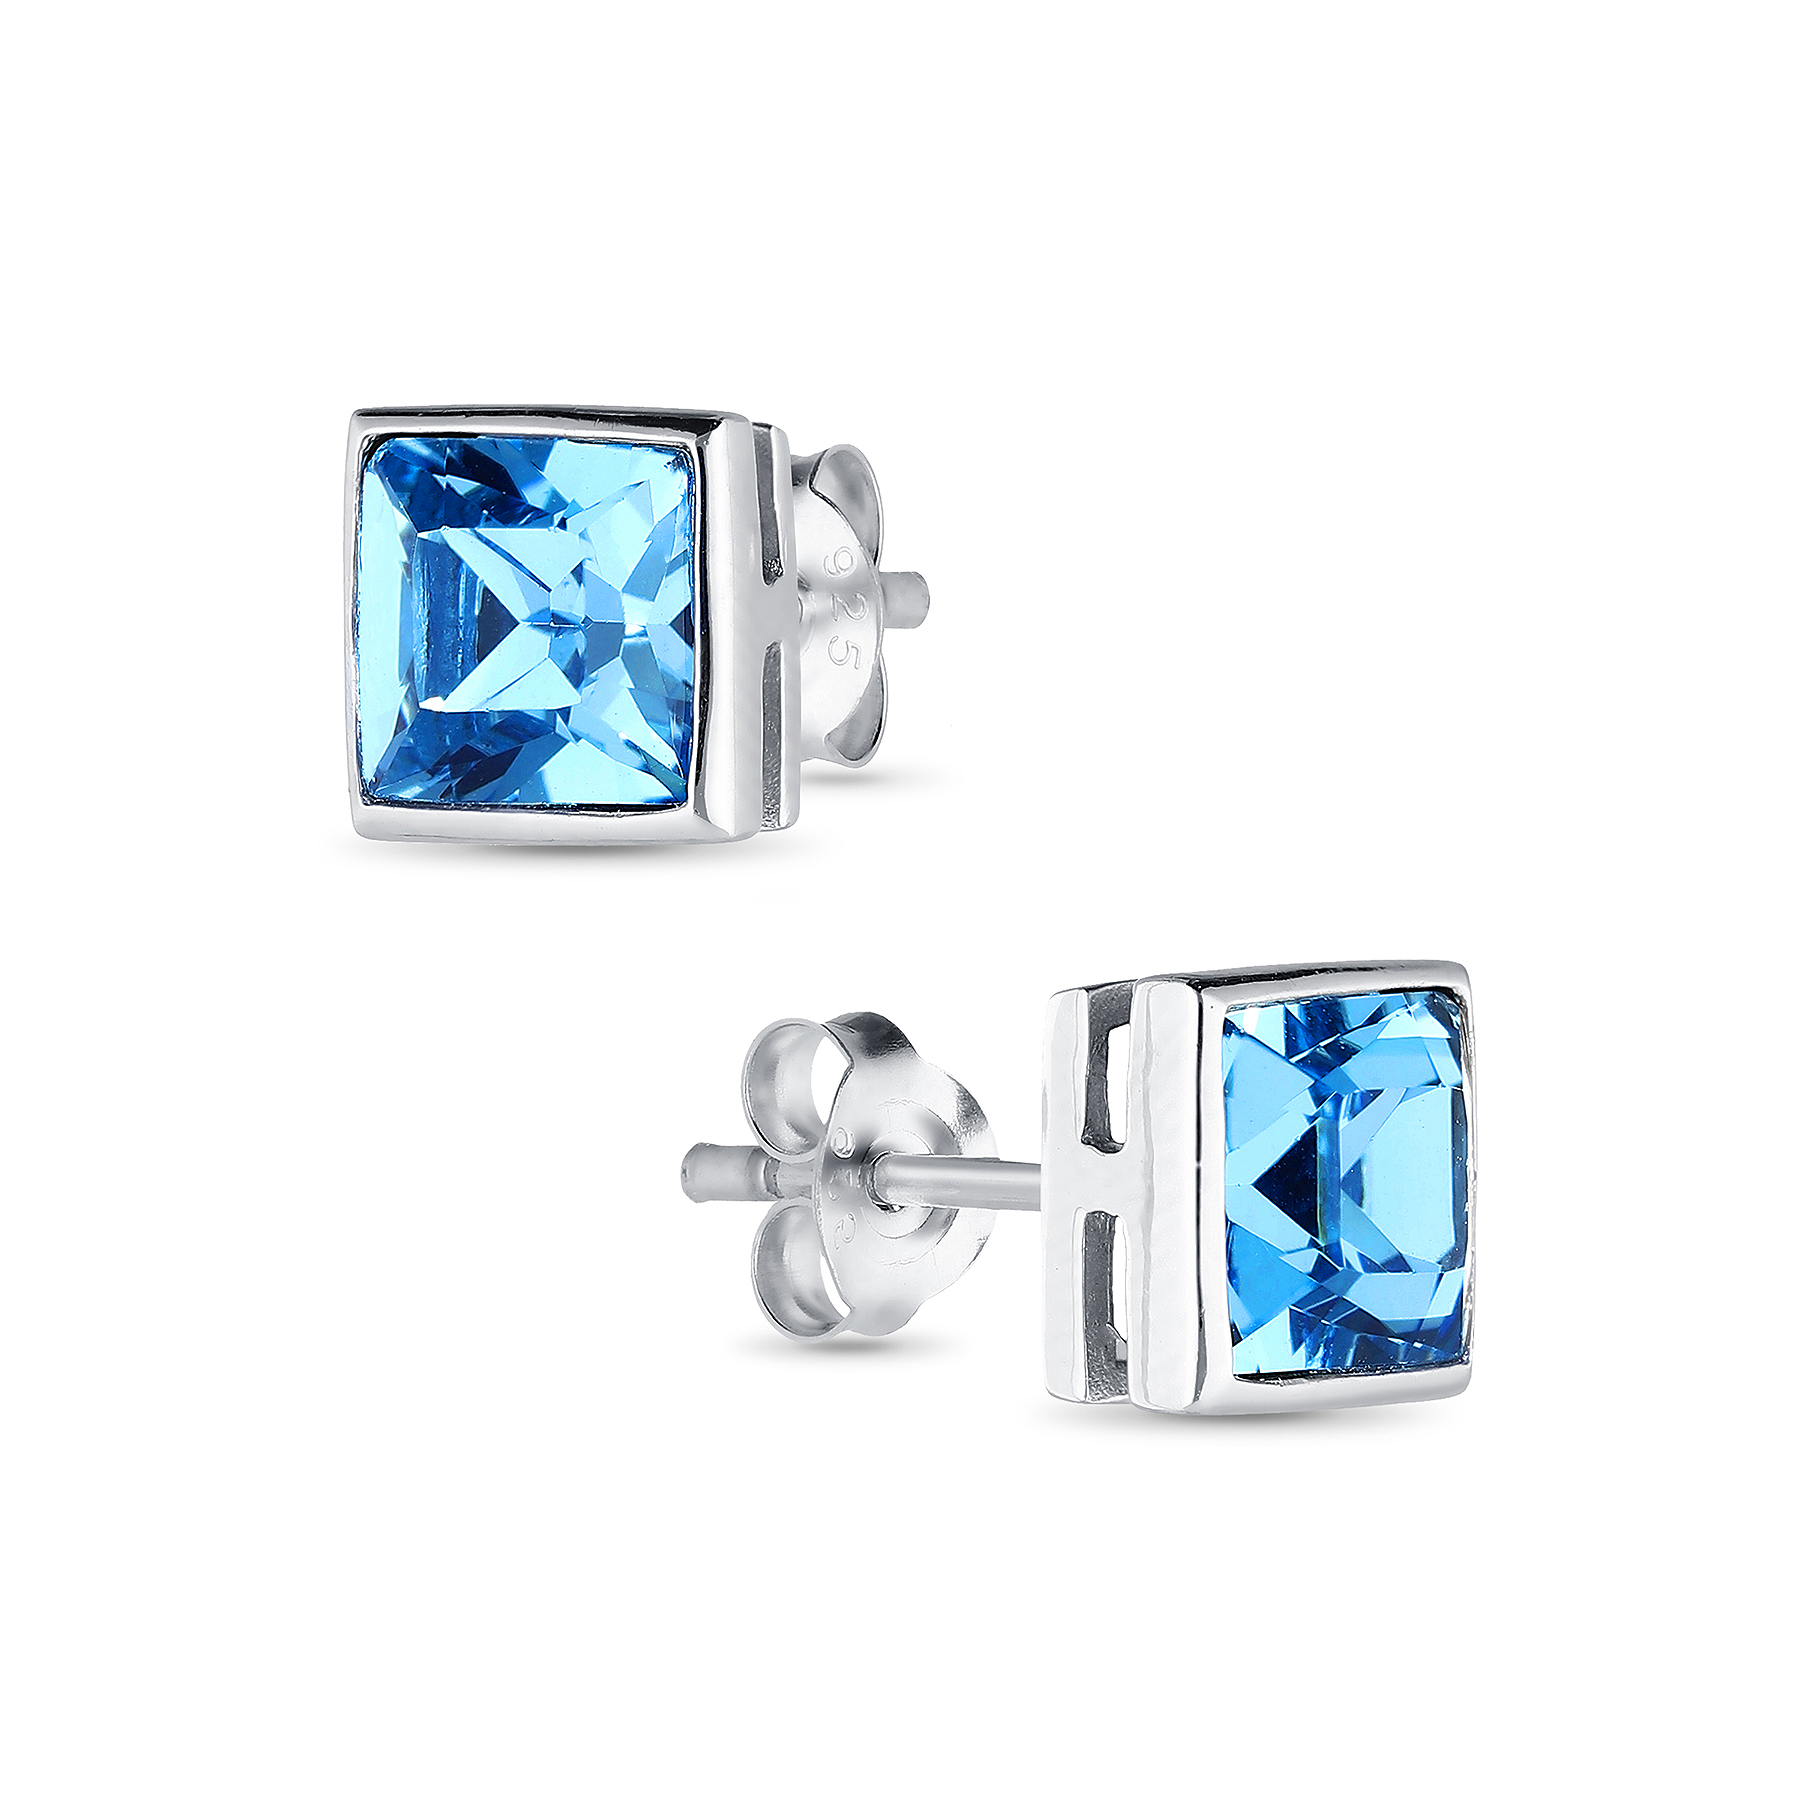 1583-224 - Sparkle by 7K - 925 Sterling Silver Square Push-Back Earrings Decorated With Verifiable Authentic Swarovski Crystals